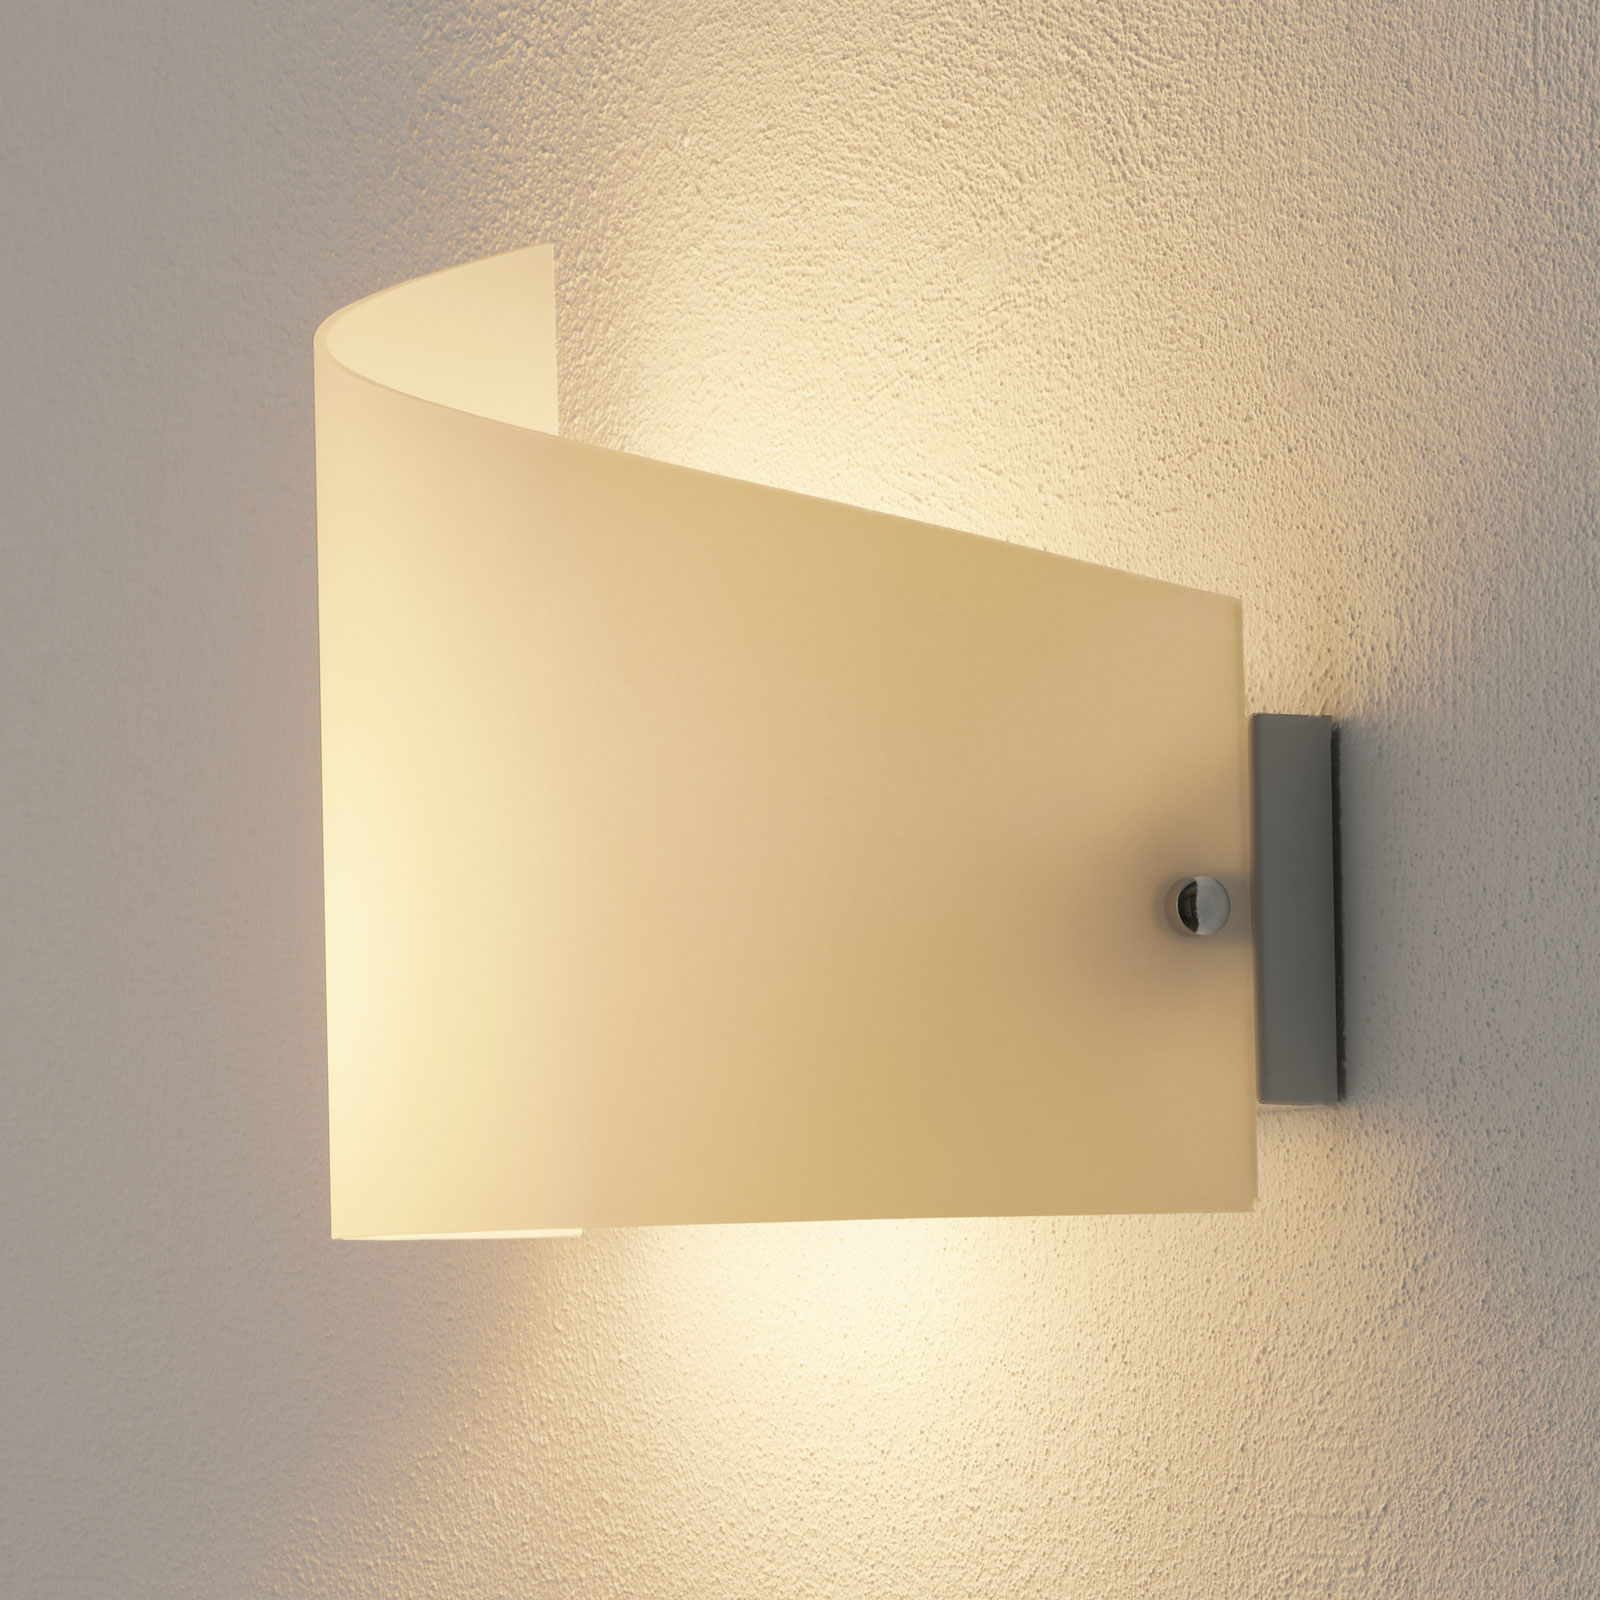 Moa Wall Light with Curved Glass Shade_3502504_1